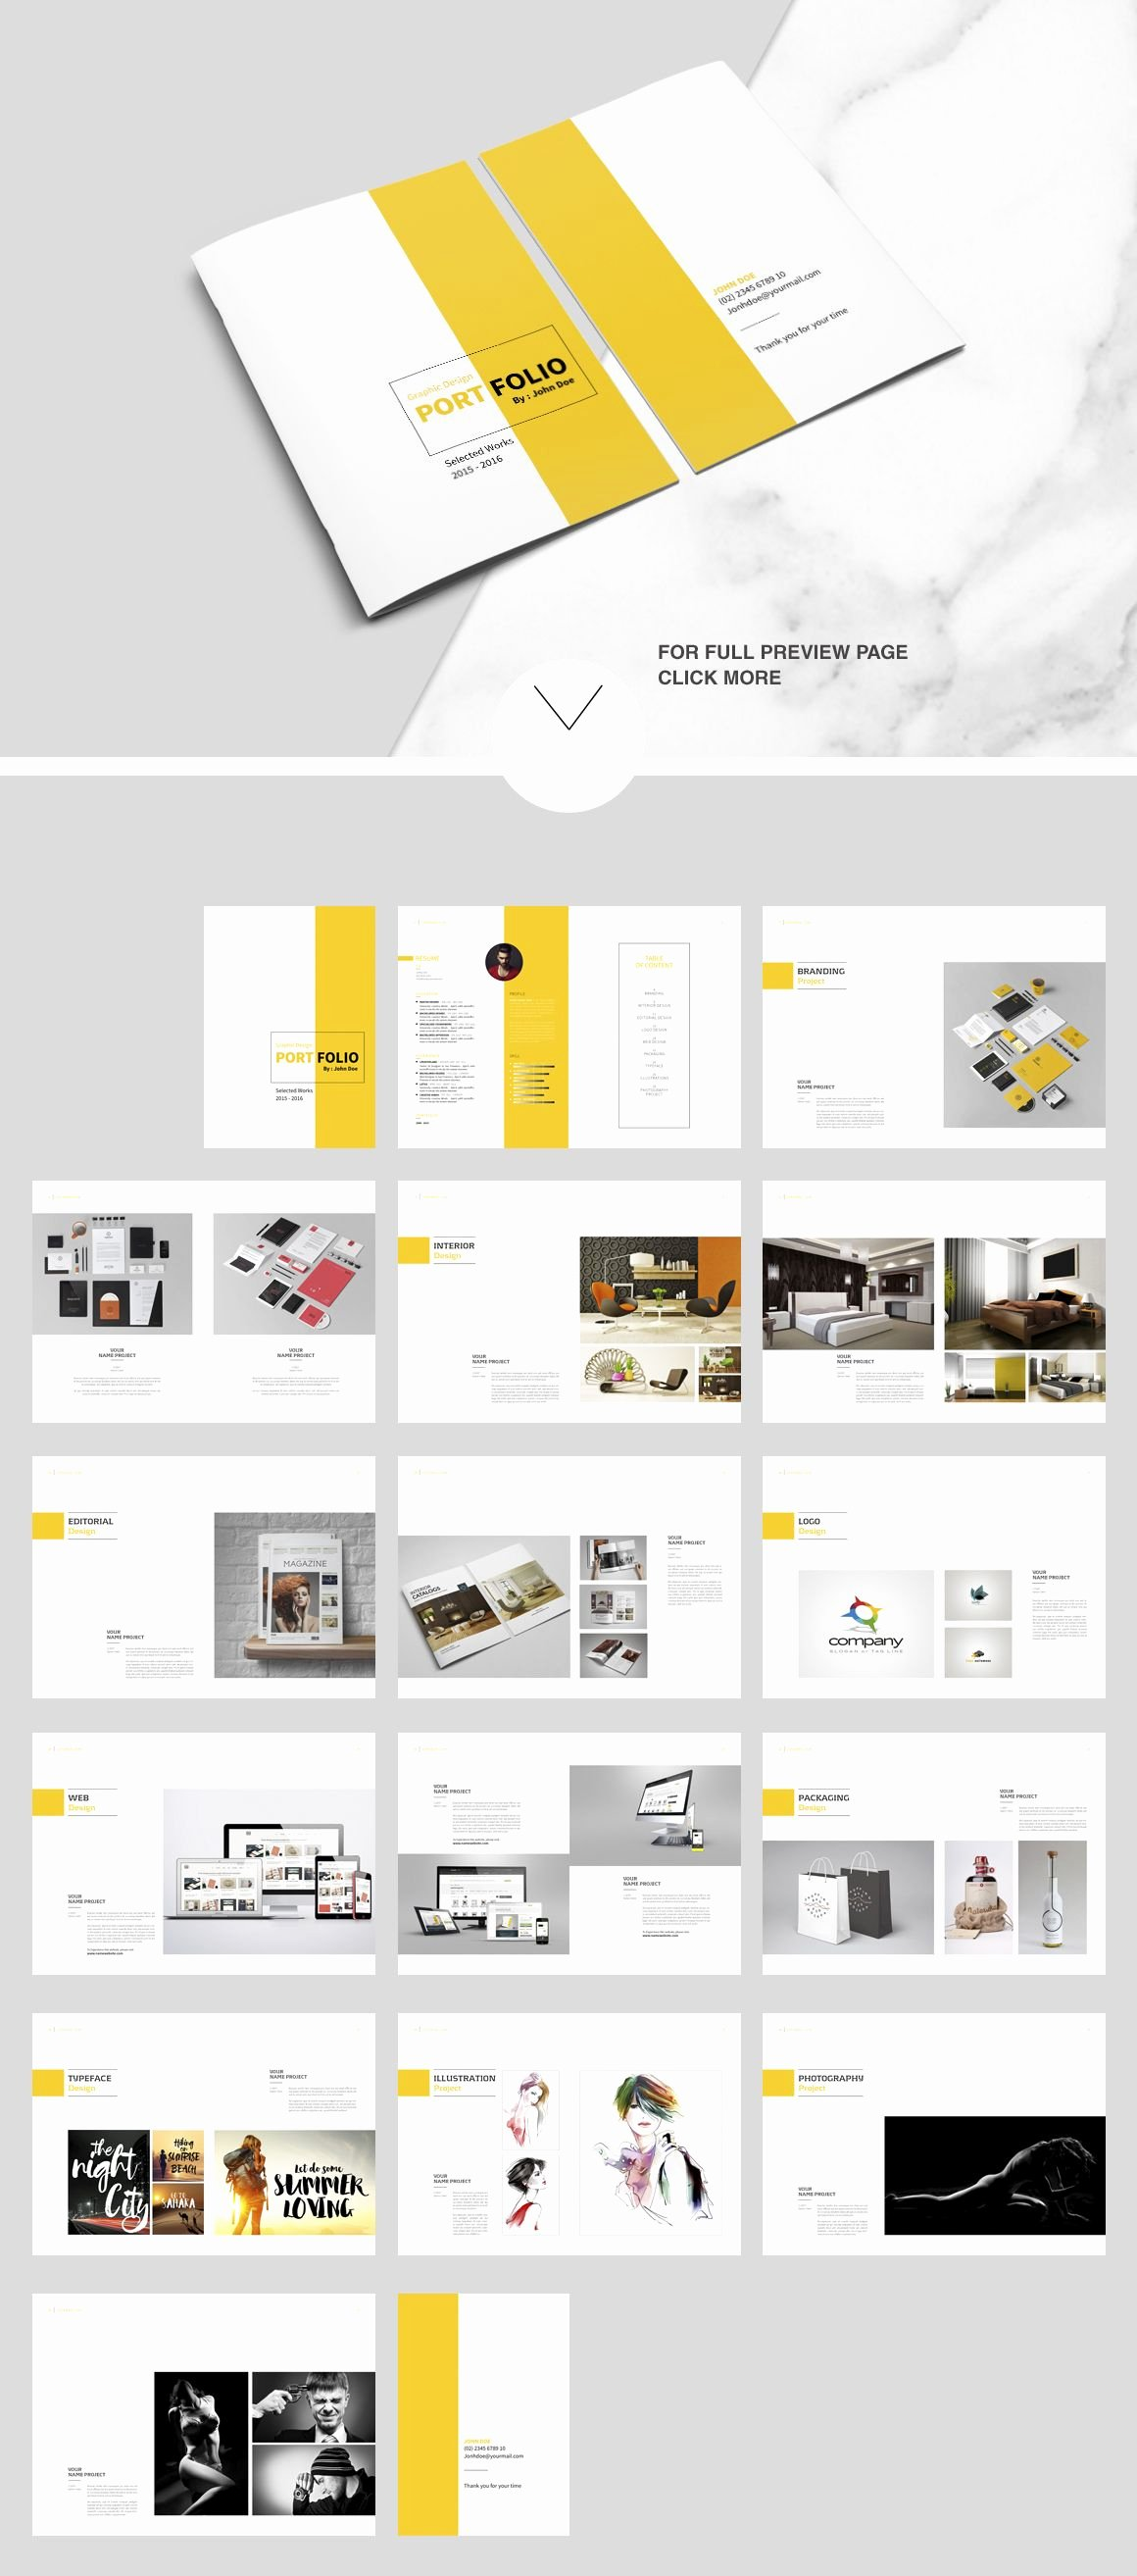 Architecture Portfolio Design Templates Best Of Indesign Portfolio Brochure Vol 2 by Tujuhbenua On